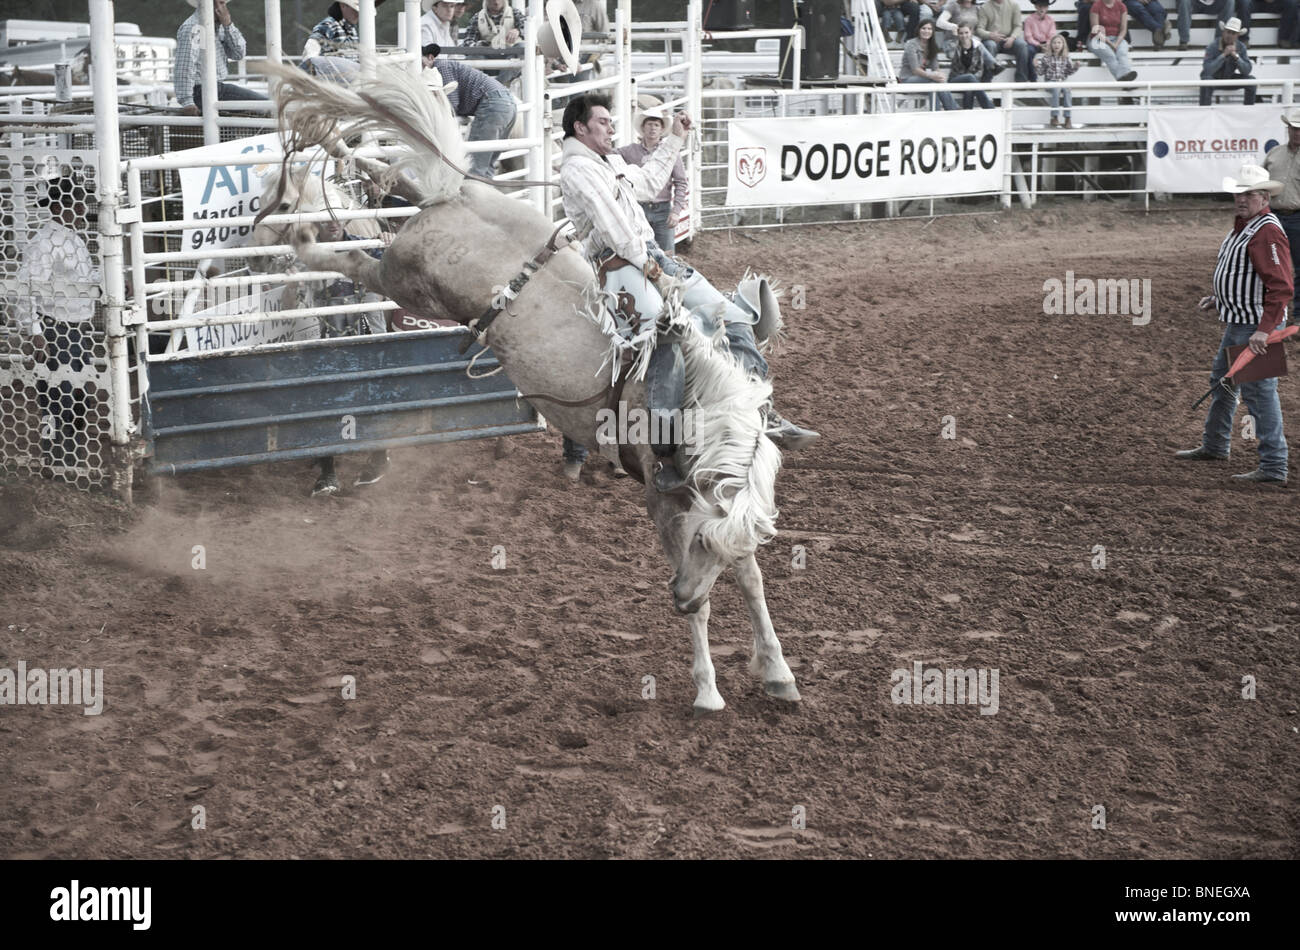 Rodeo cowboy member of PRCA trying to balance himself on horse in Smalltown Bridgeport, Texas, USA Stock Photo